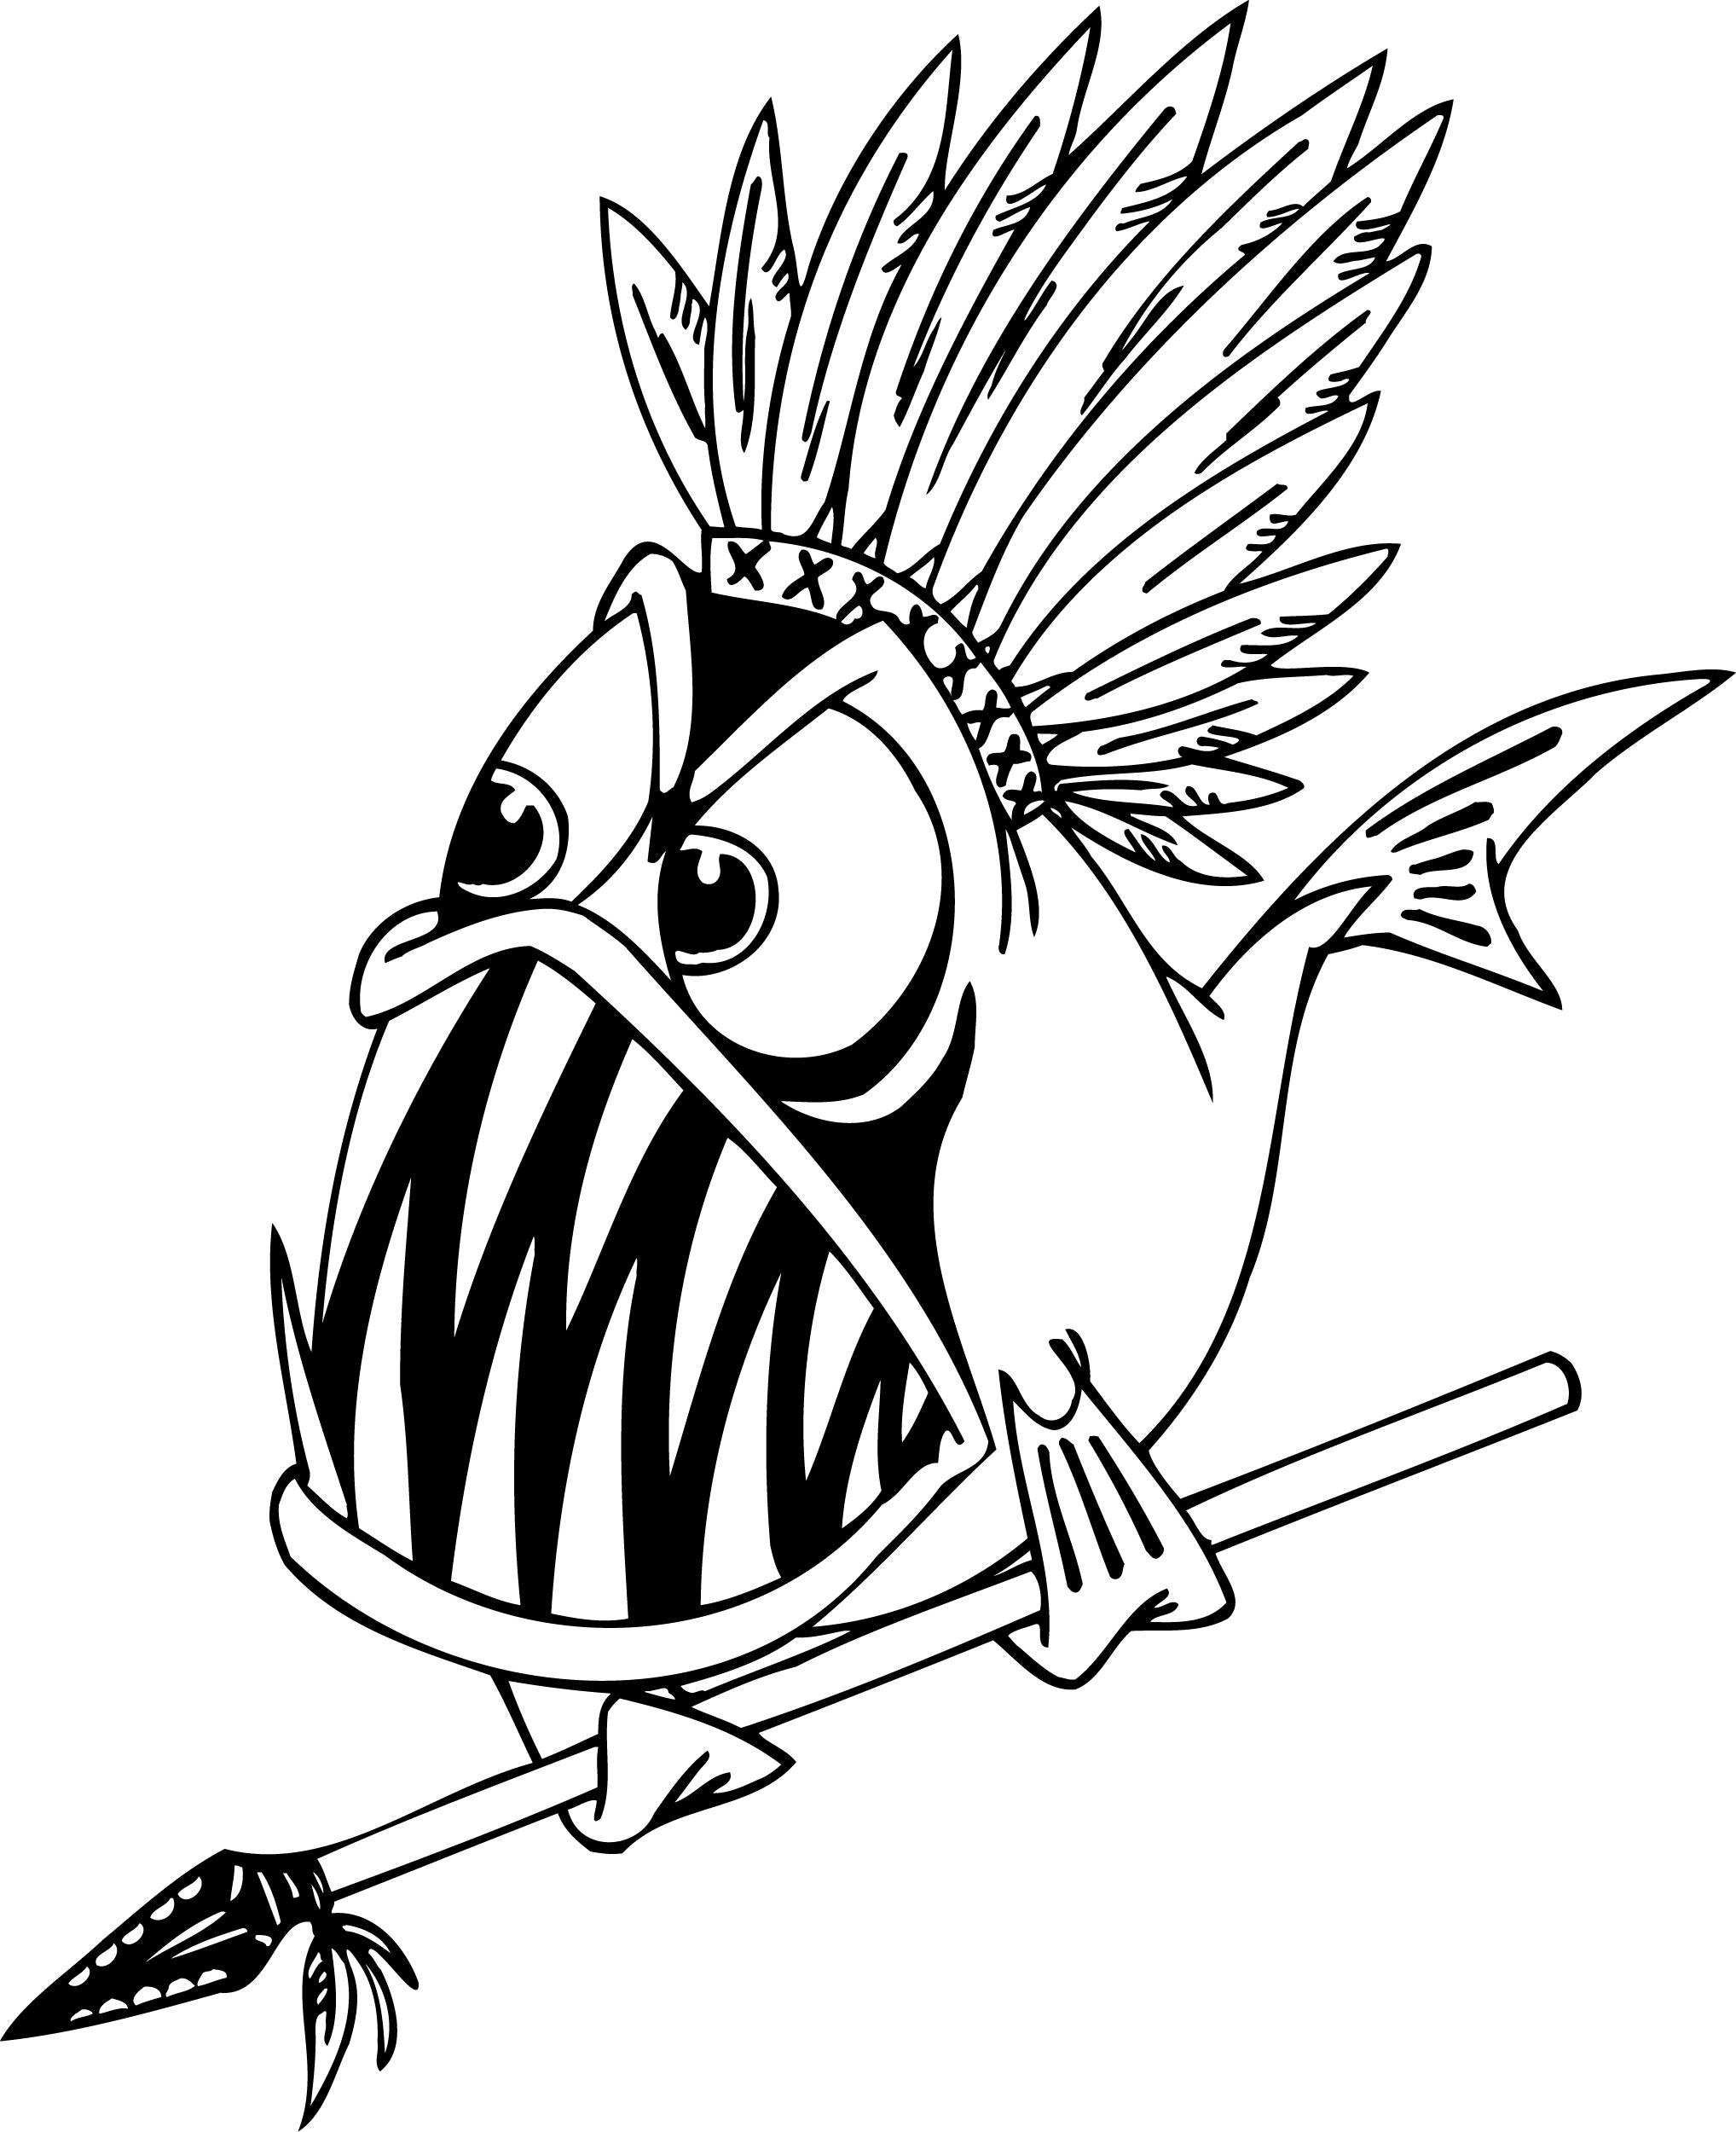 2036x2500 Coloring Pages Of A Piranha Fish Holding A Spear For Preschoolers